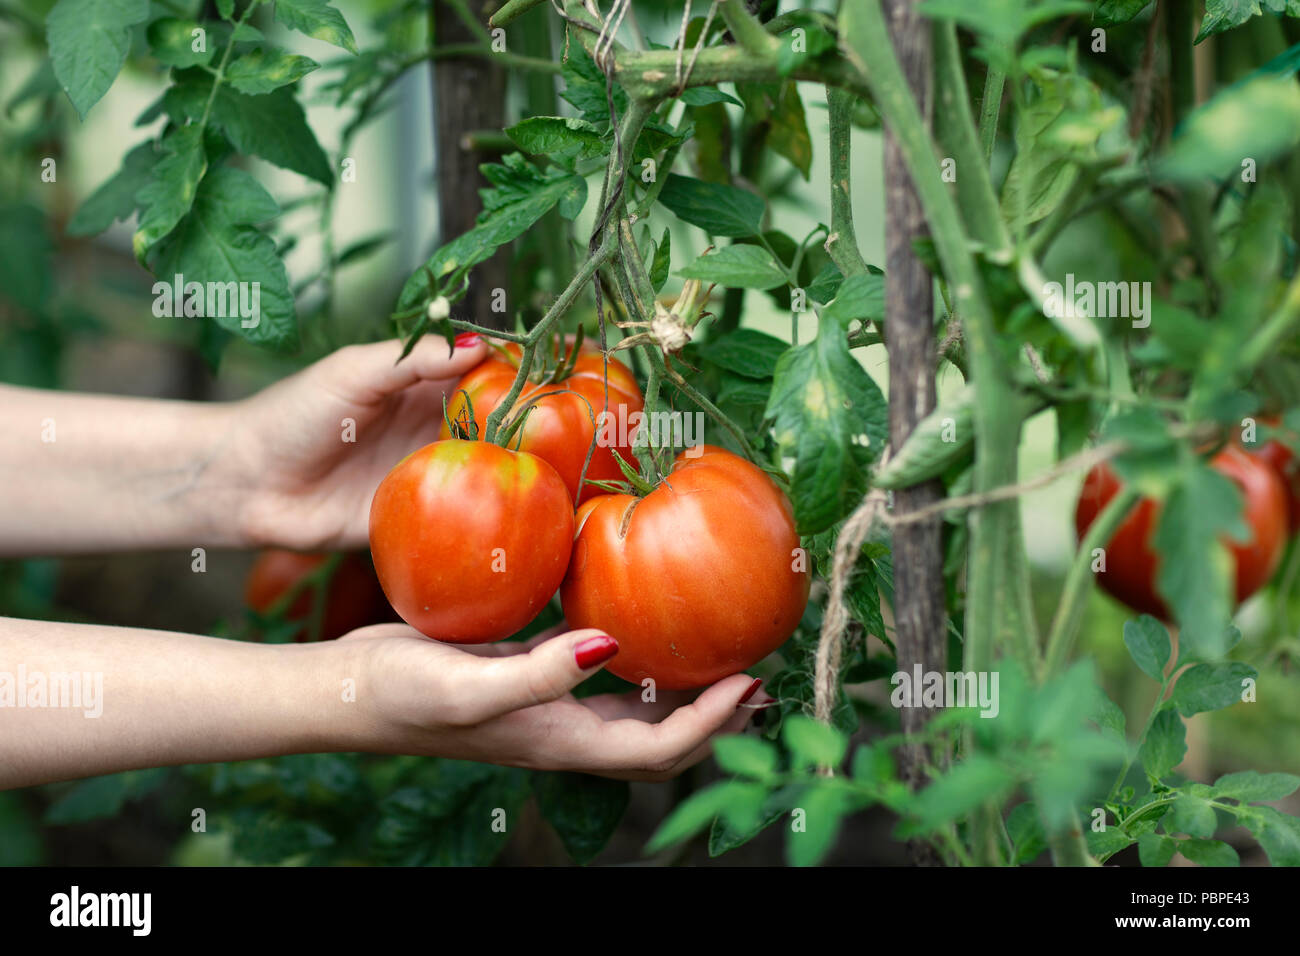 Woman's hands picking red tomatoes (Solanum lycopersicum) in greenhouse. Kaluga Region, Central Russia. - Stock Image